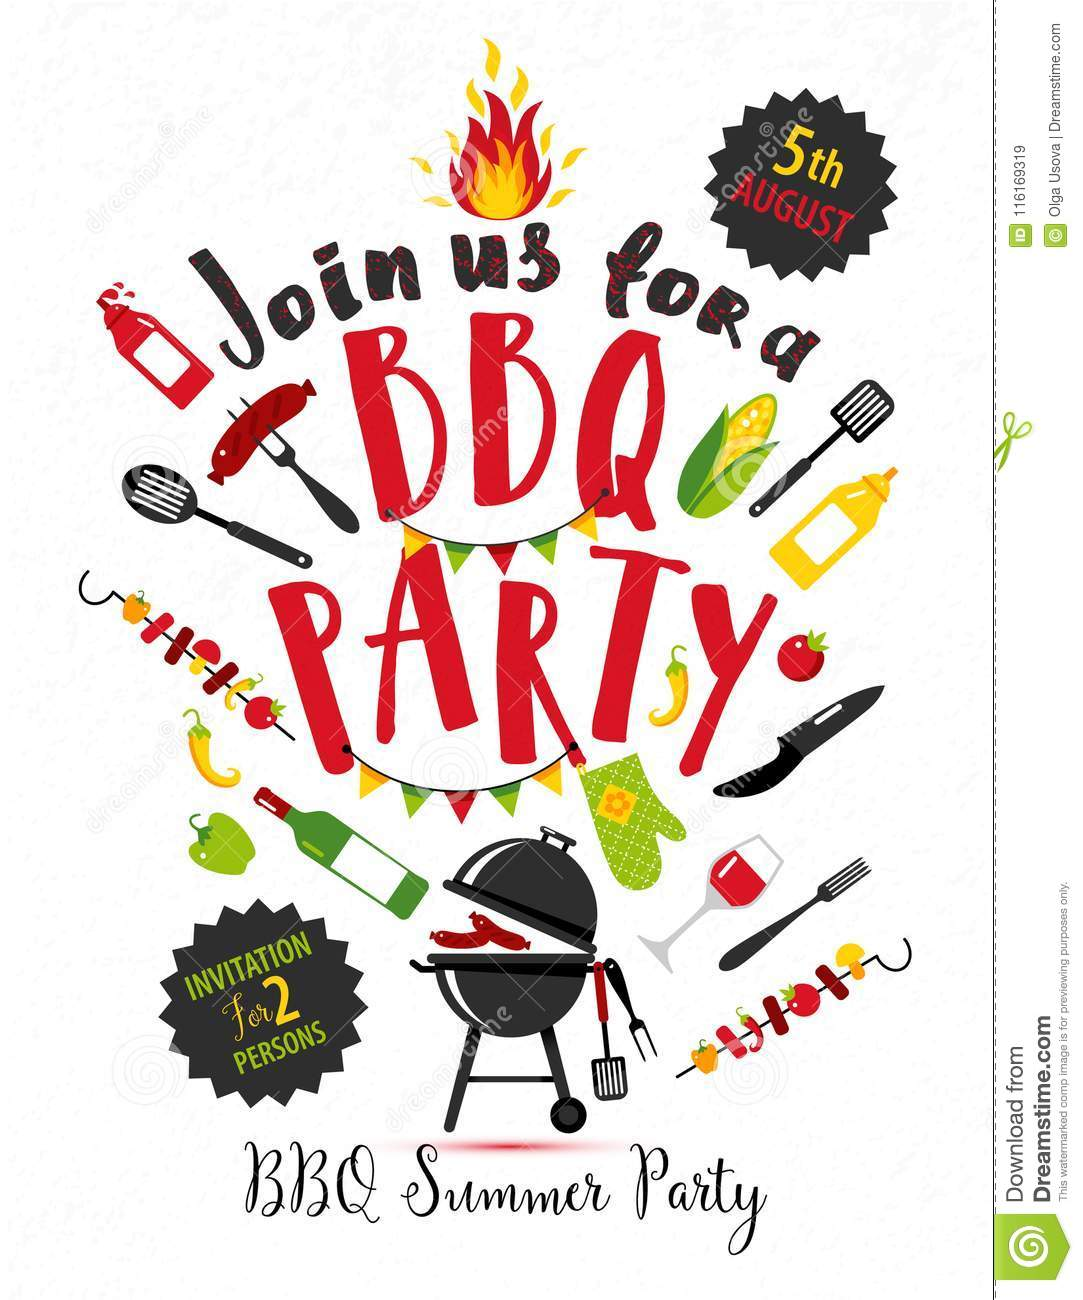 Bbq Party Invitation On White Background With Symbols Of Bbq Stock